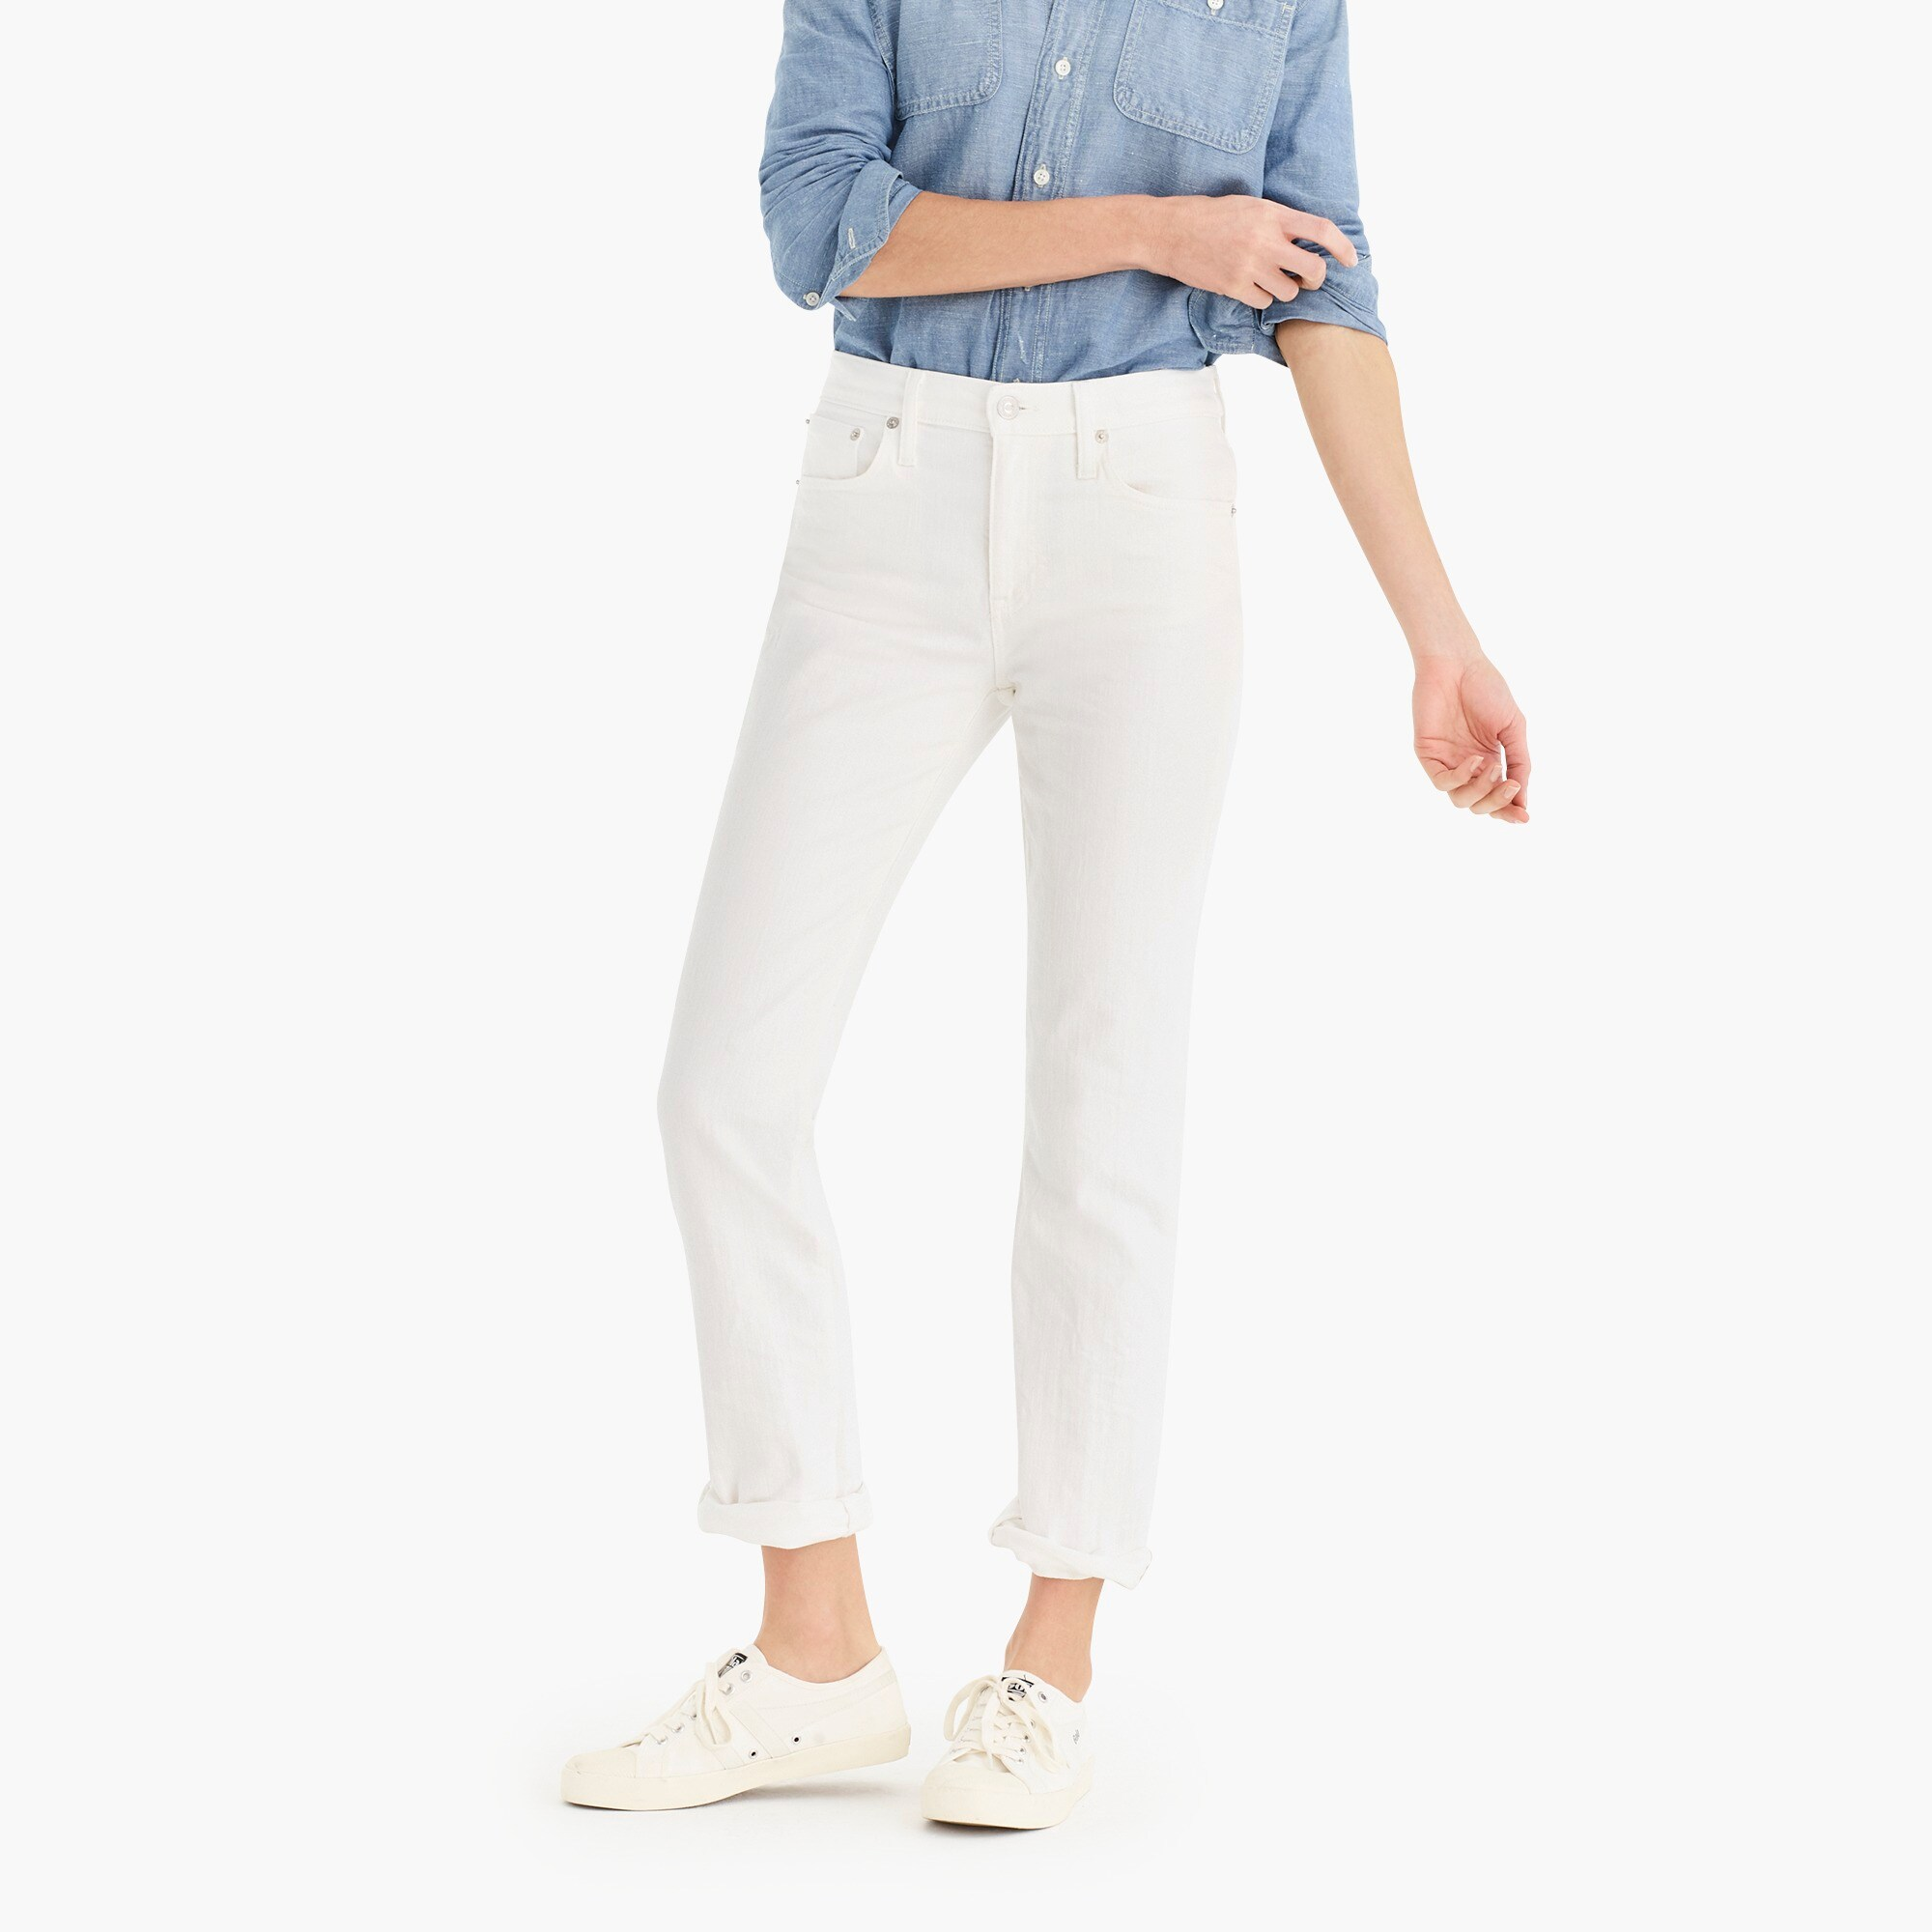 Tall slim broken-in boyfriend jean in white